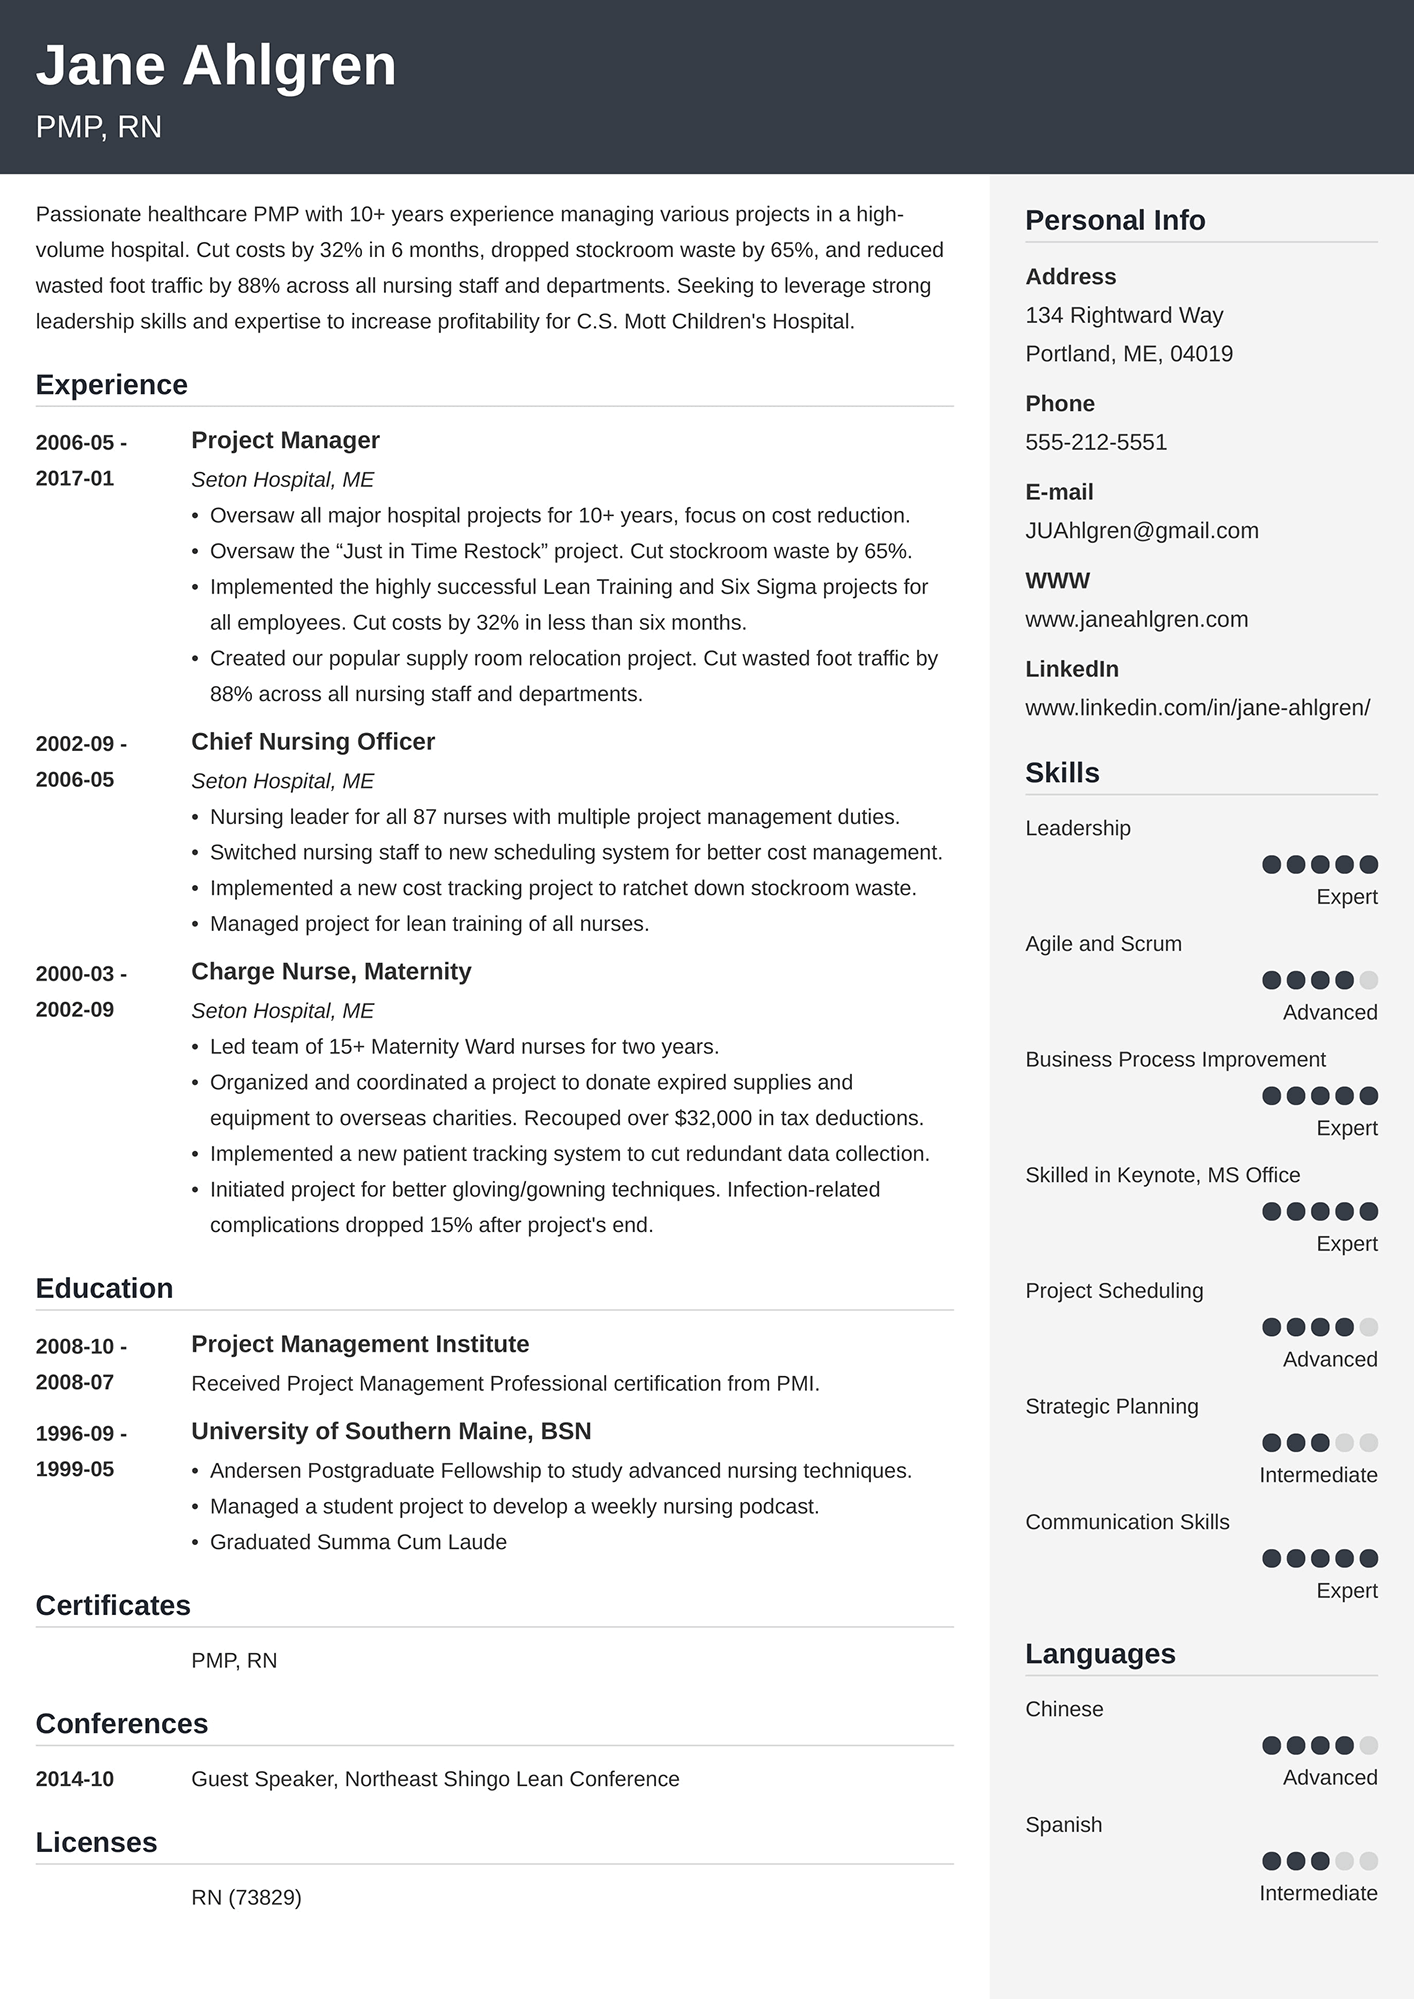 Example of a general resume